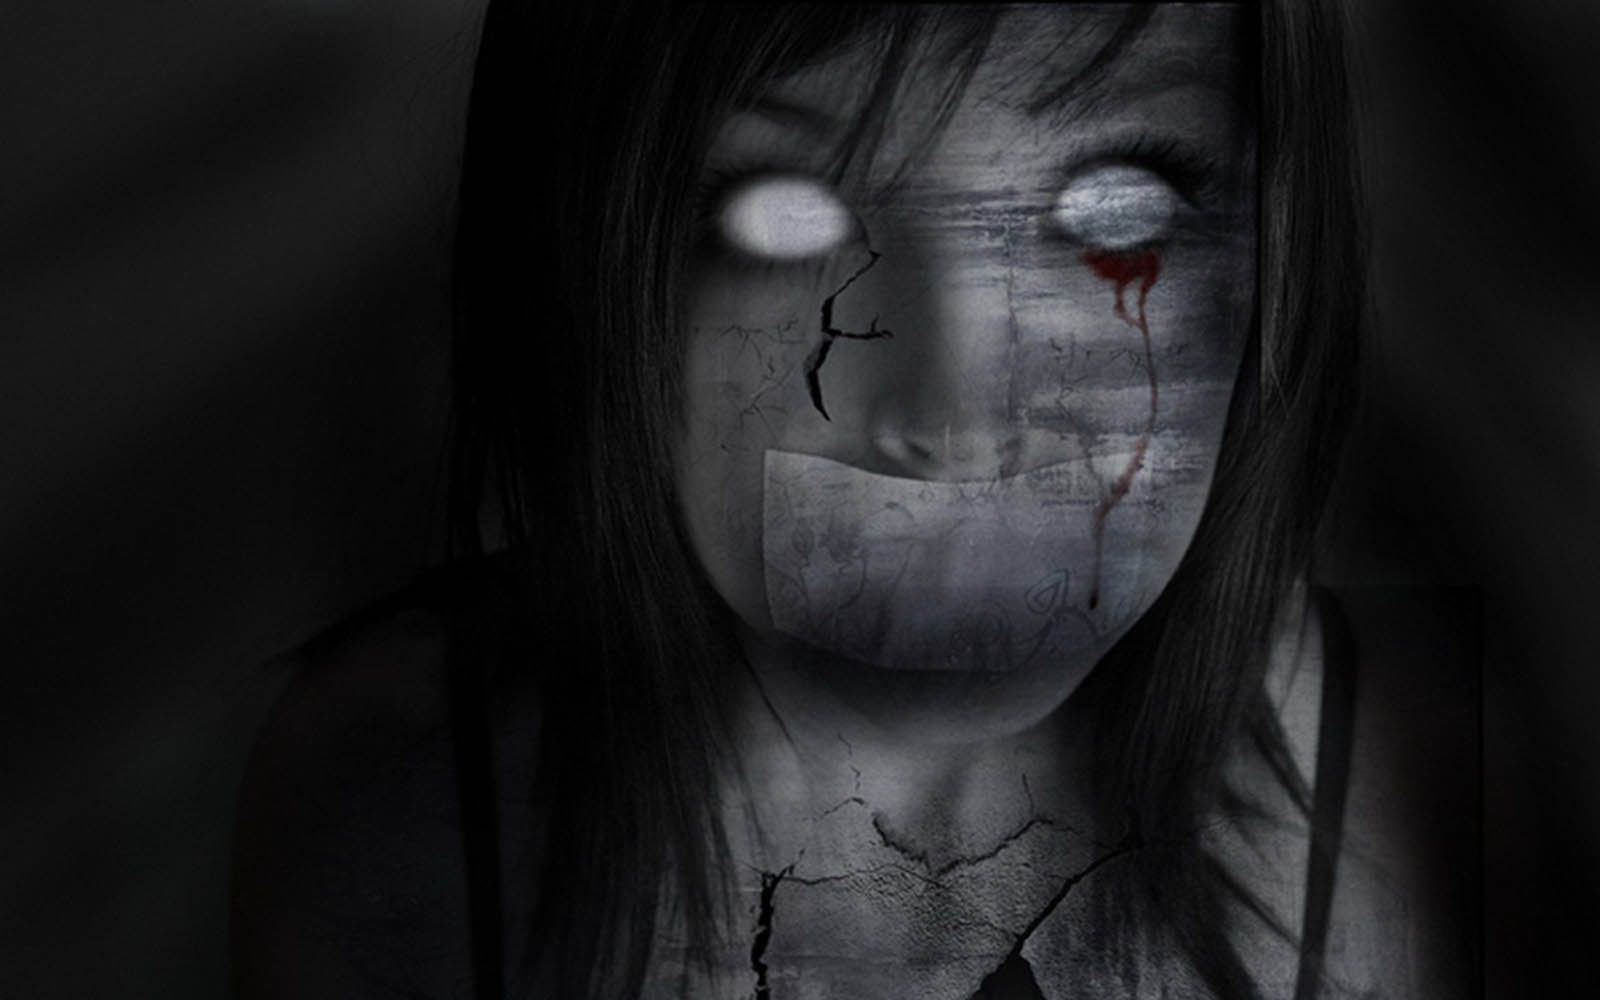 Tag Dark Gothic Wallpapers BackgroundsPhotos Pictures and Images 1600x1000